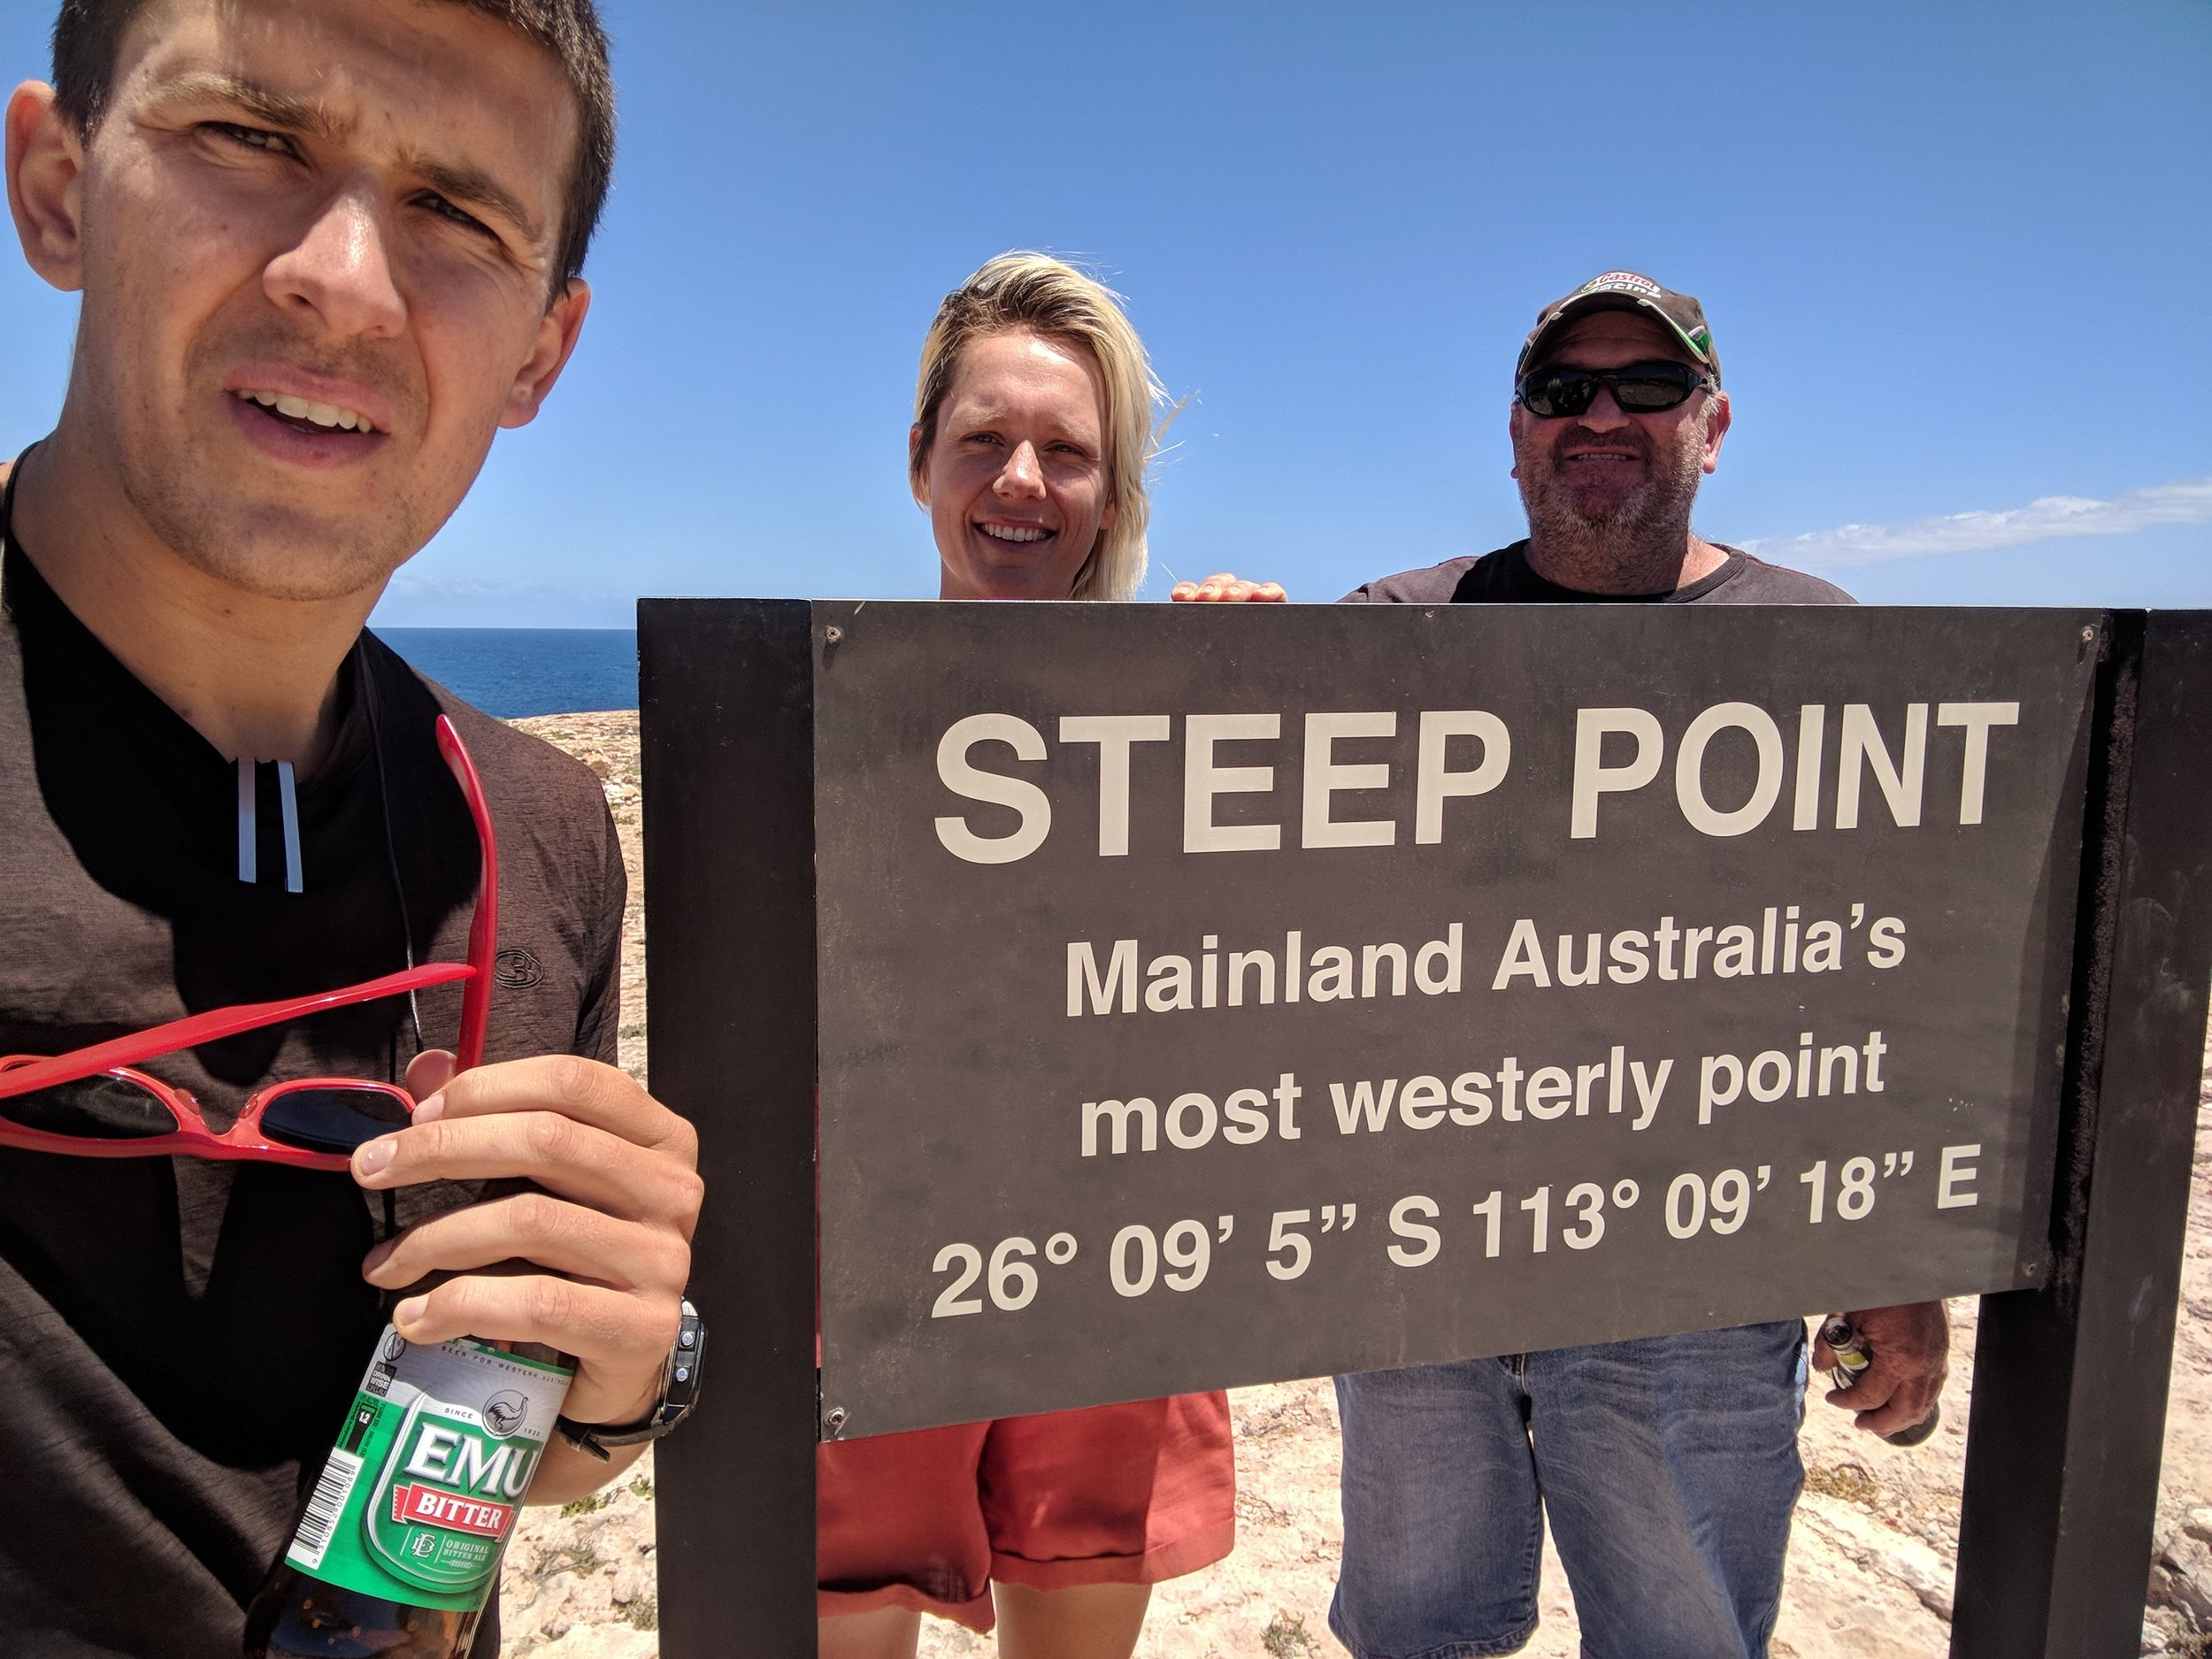 Steep Point thanks to Dave